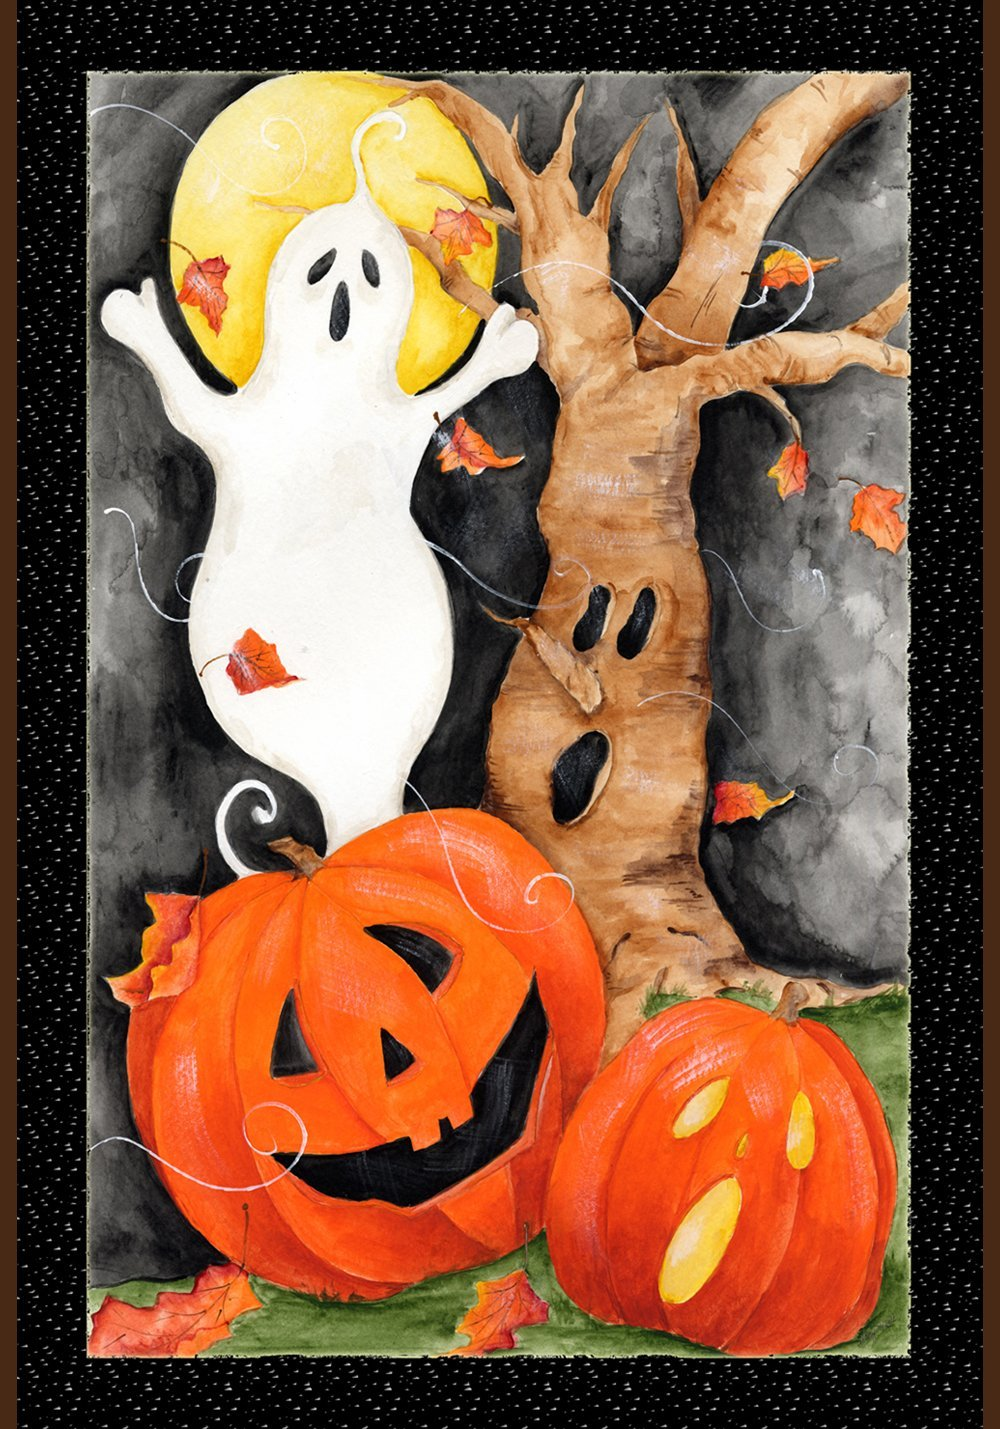 Toland Home Garden Halloween Scene 12.5 x 18 Inch Decorative Spooky Ghost Pumpkin Garden Flag